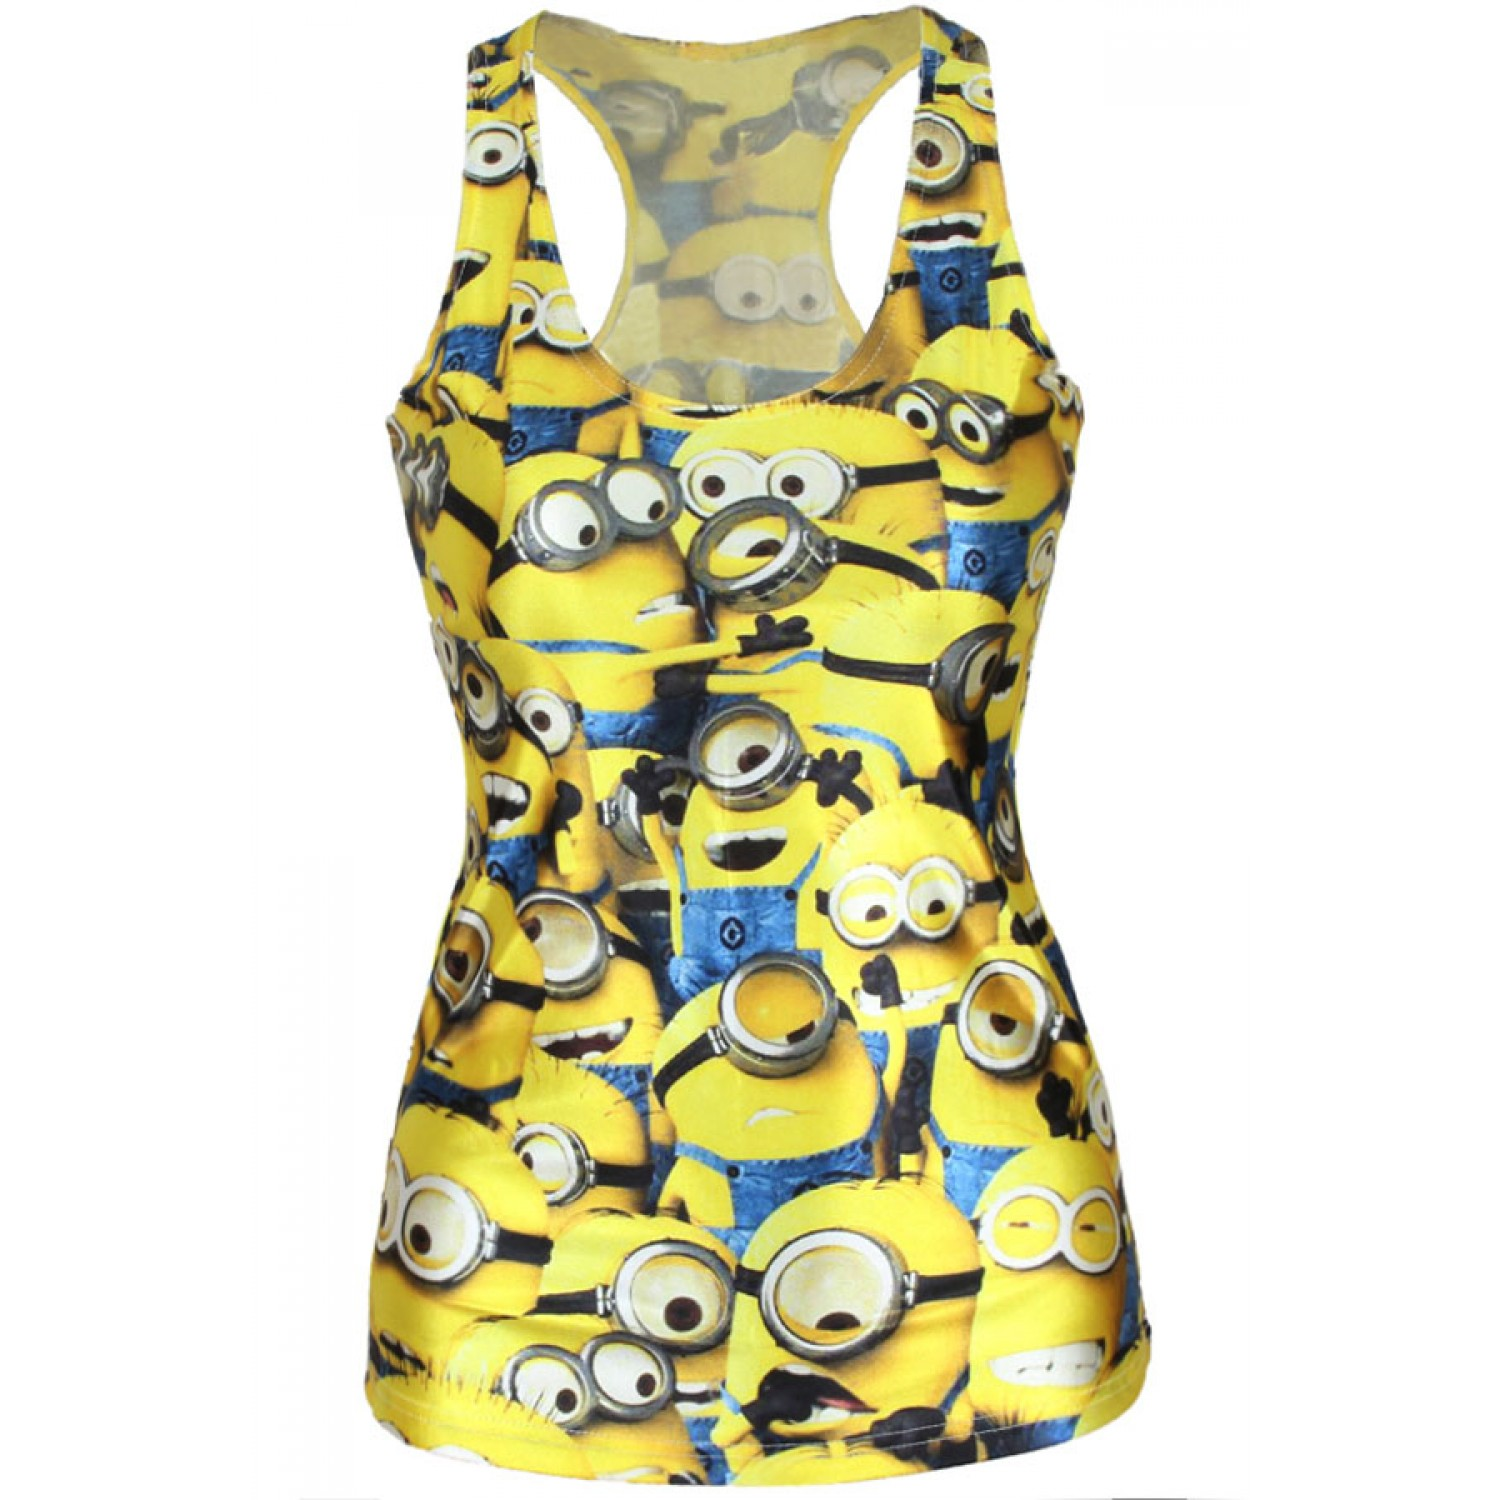 Gojilove Despicable Me Minion Yellow